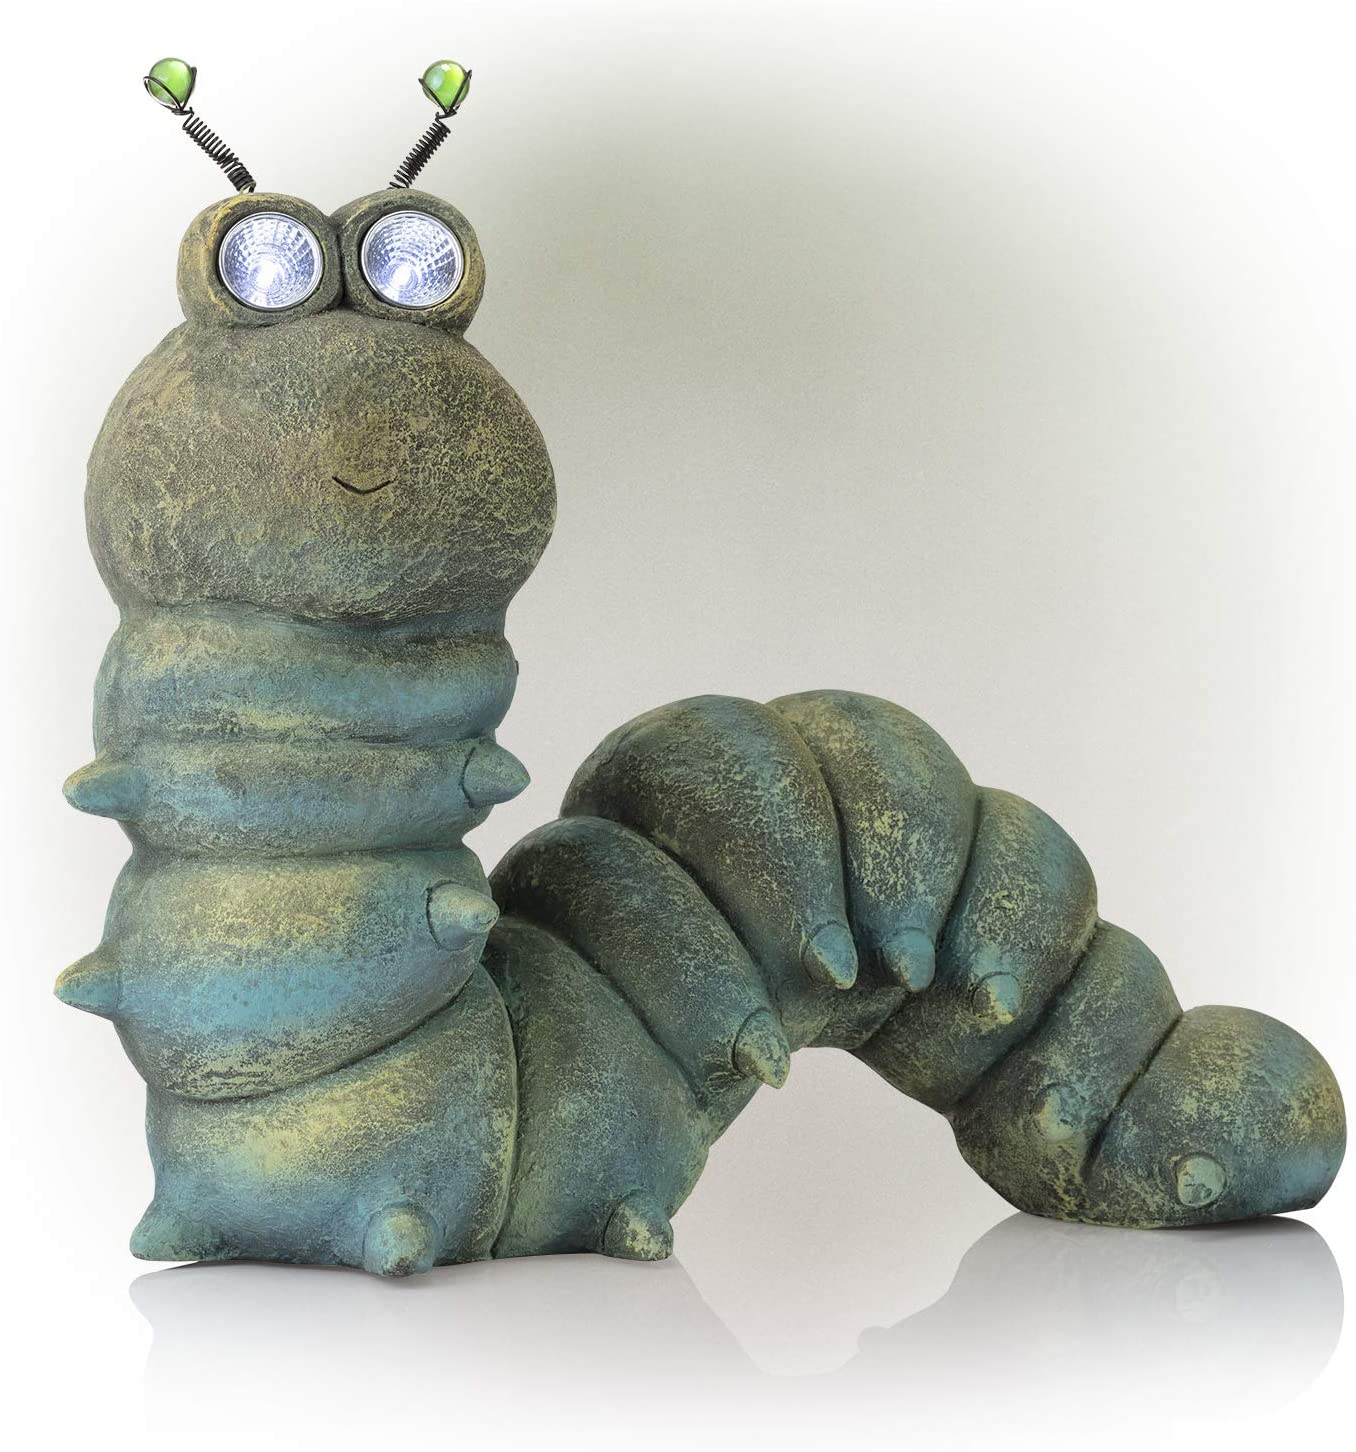 Alpine Corporation Caterpillar Statue with Solar LED Lights - Outdoor Decor for Garden, Patio, Deck, Porch - Yard Art Decoration - 16 Inches Tall